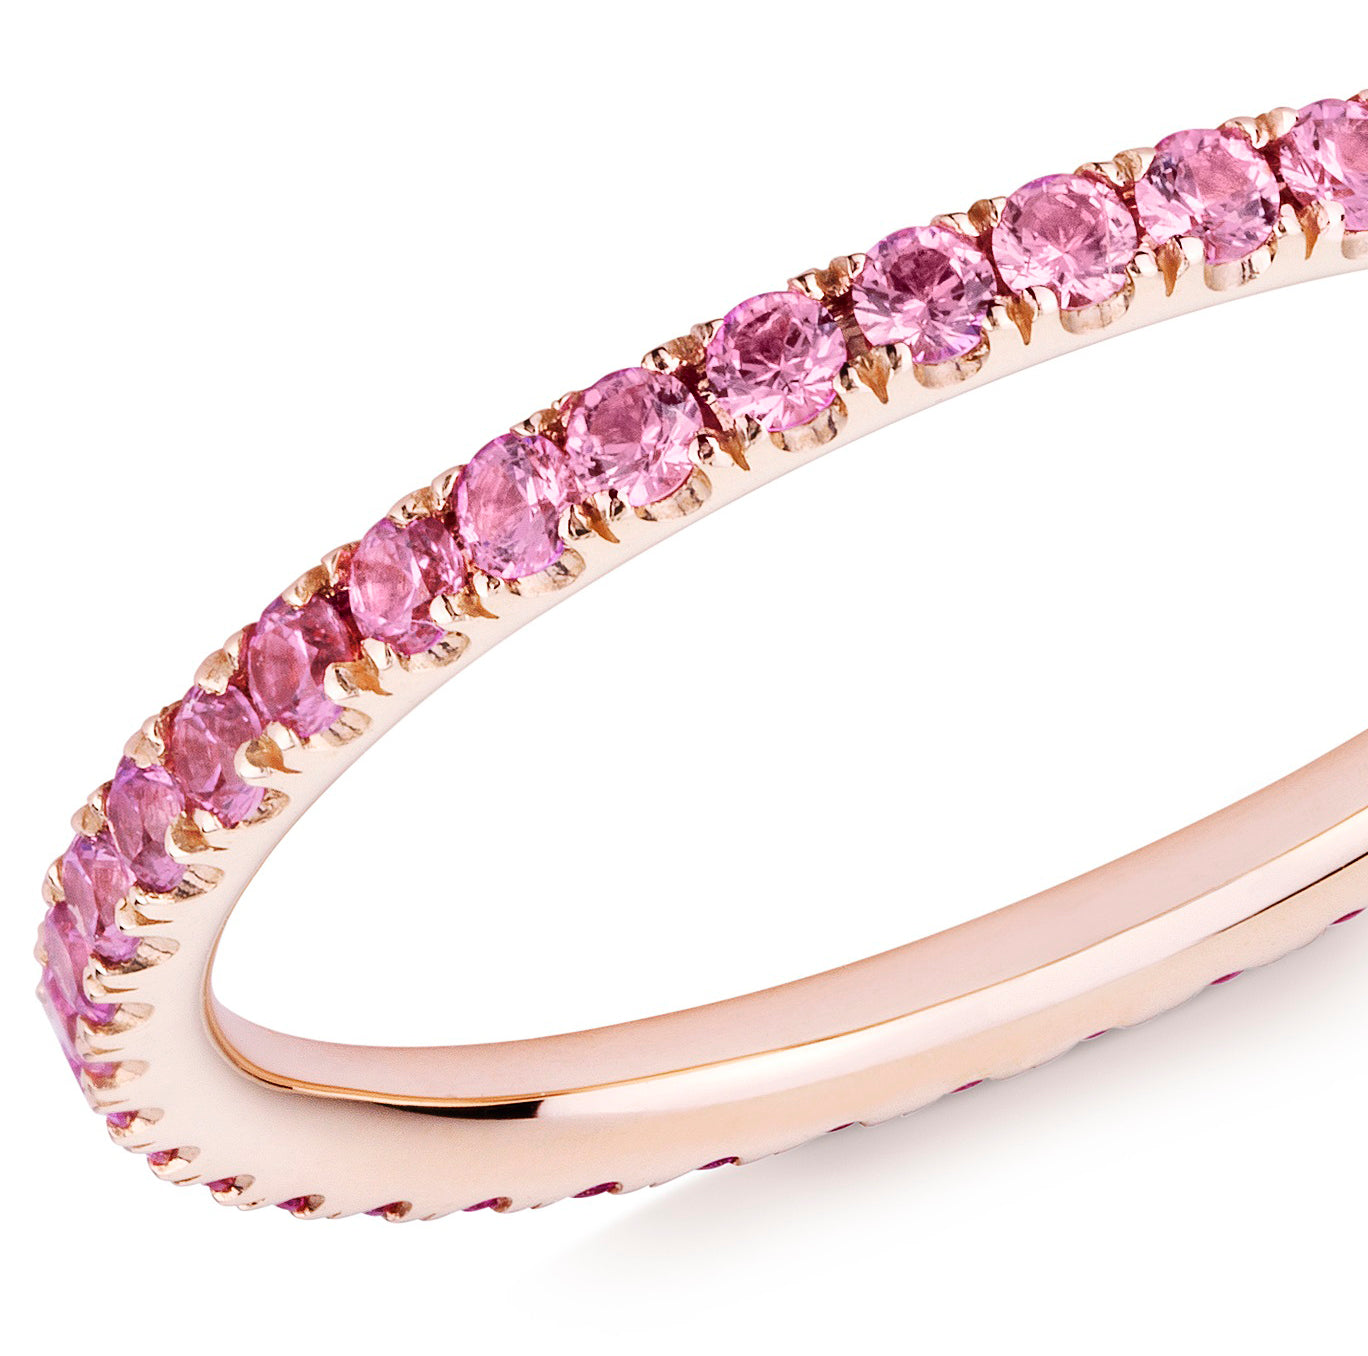 Closeup of a pink sapphire eternity ring in 18ct rose gold on a white background.